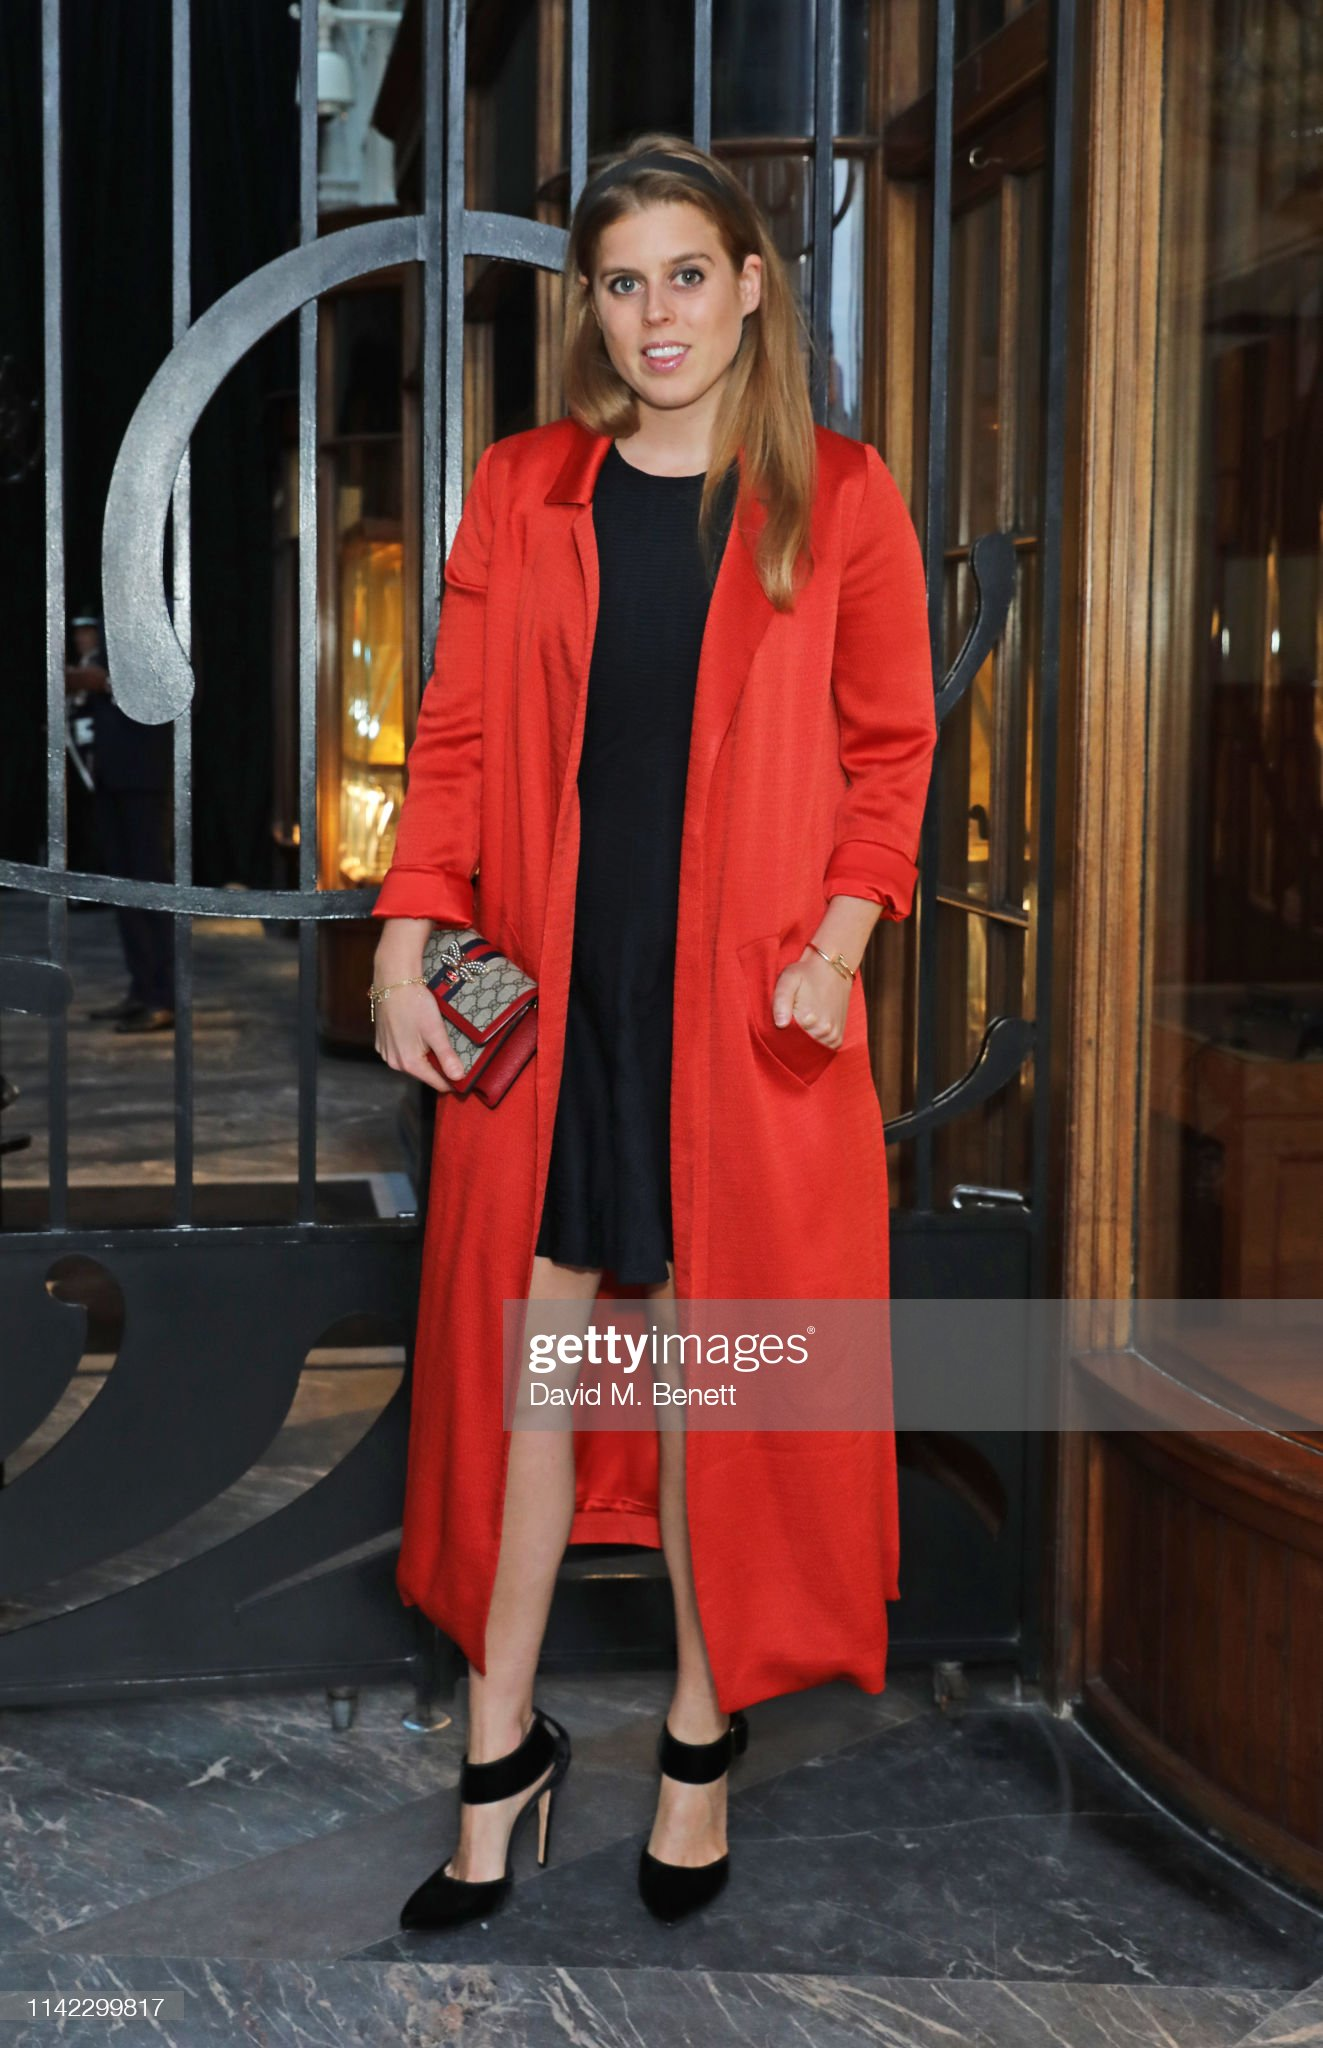 https://media.gettyimages.com/photos/princess-beatrice-of-york-attends-the-burlington-arcade-200th-dinner-picture-id1142299817?s=2048x2048